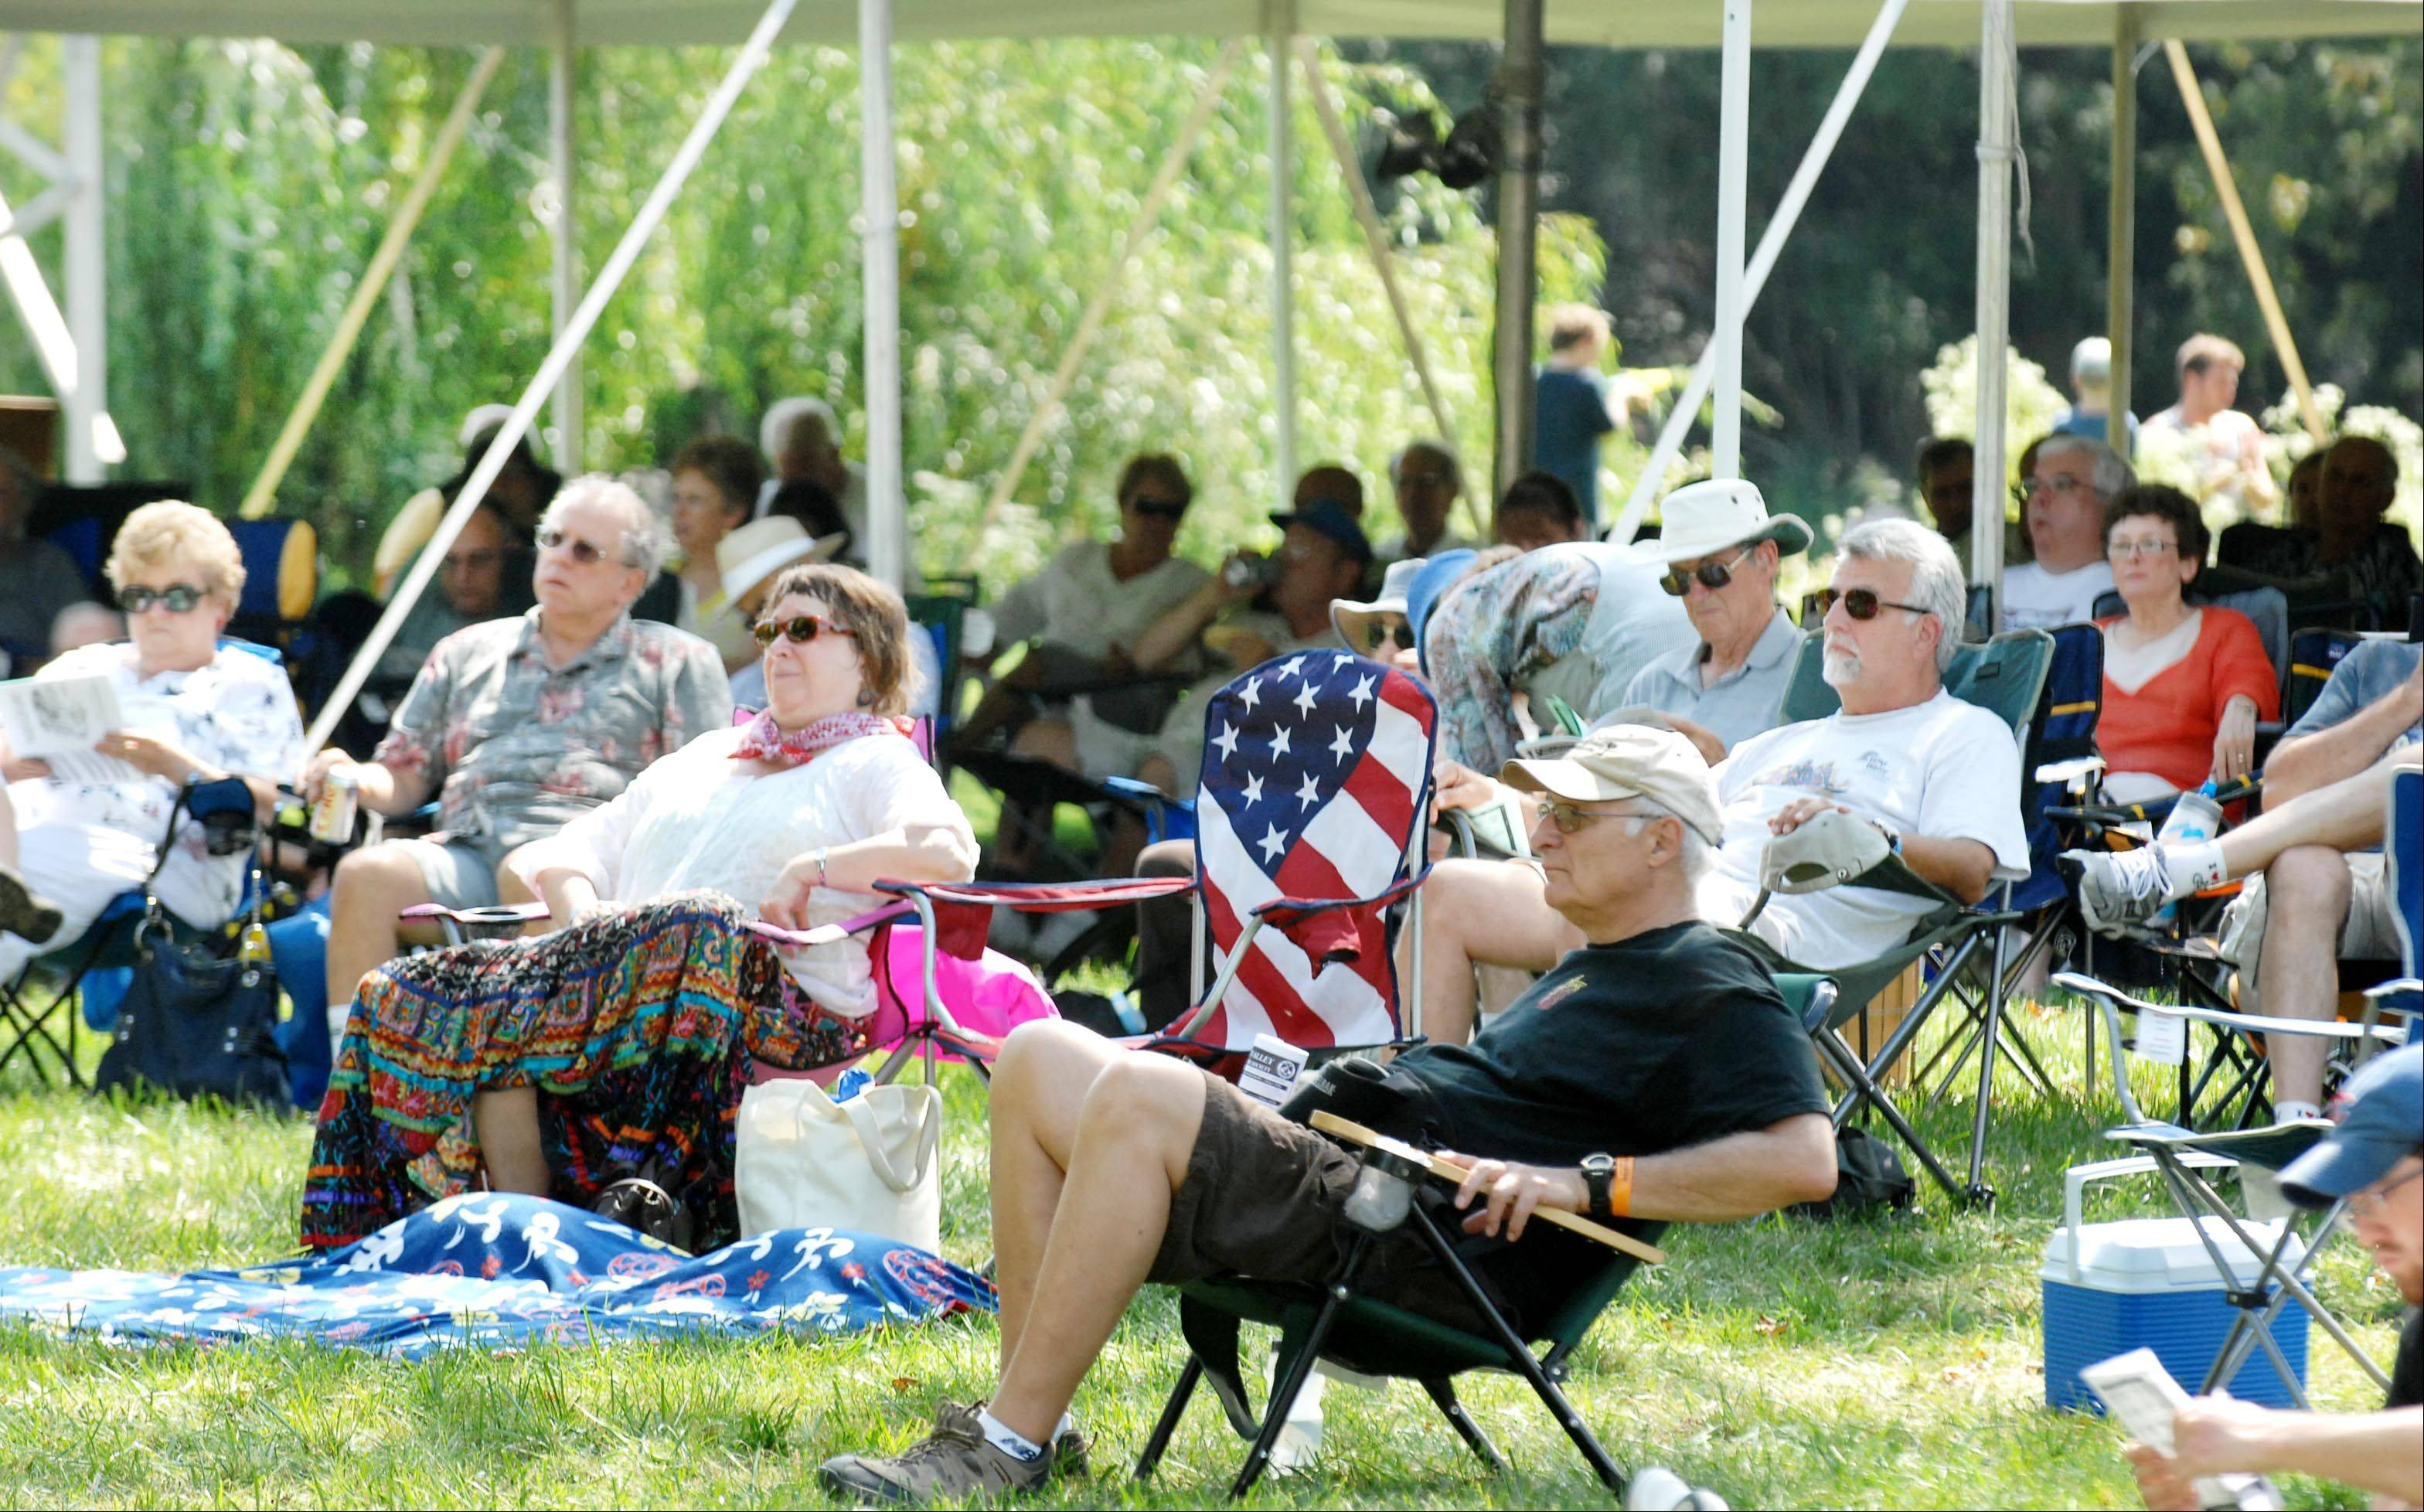 The crowd relaxes by the main stage by the Fox River at the 36th Annual Fox Valley Folk Music & Storytelling Festival in Island Park in Geneva.